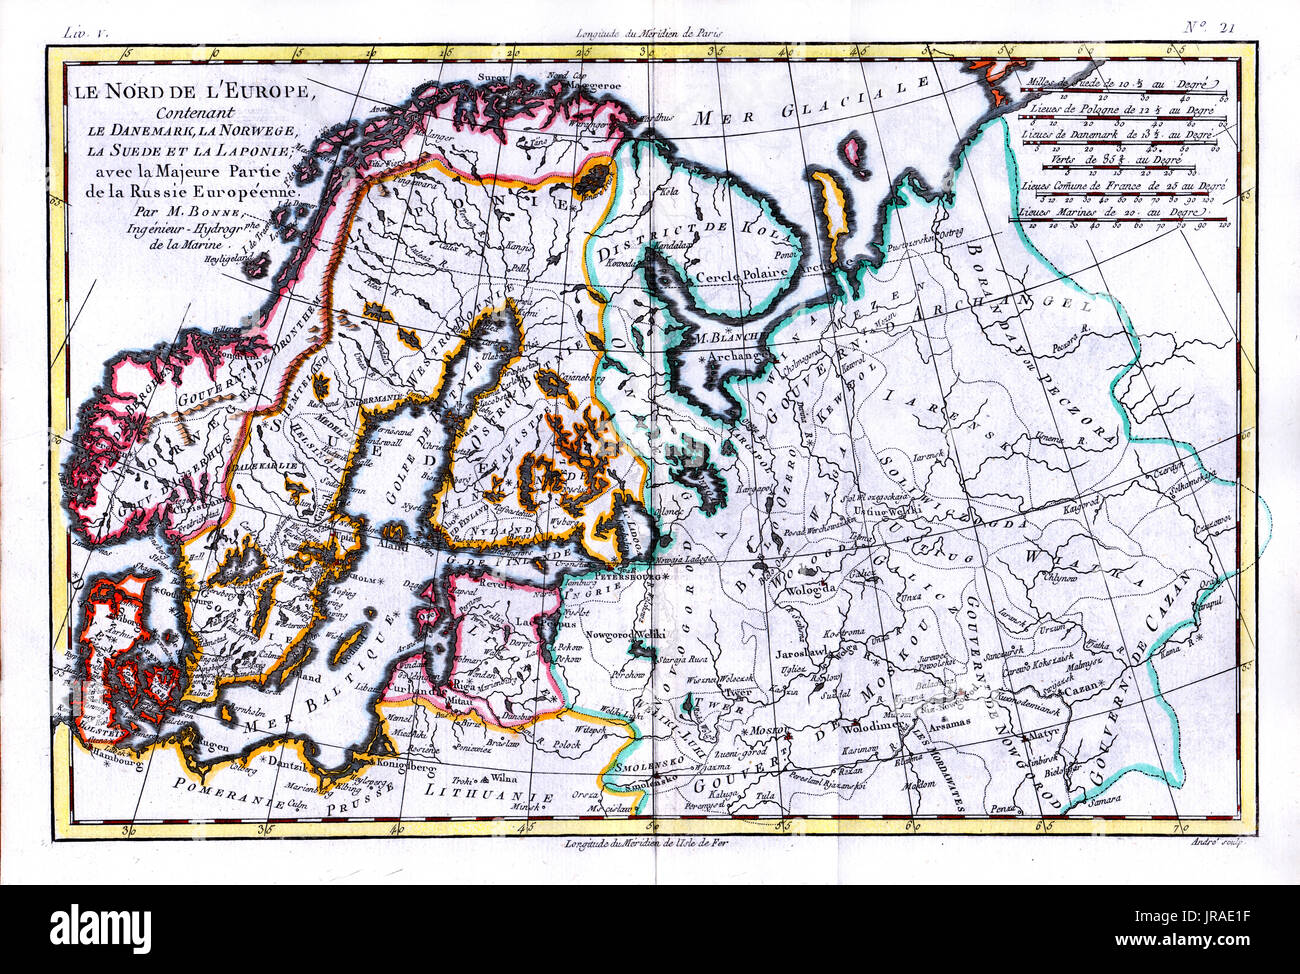 Old norway map stock photos old norway map stock images alamy 1780 bonne antique map of scandinavia including sweden finland norway and denmark gumiabroncs Images